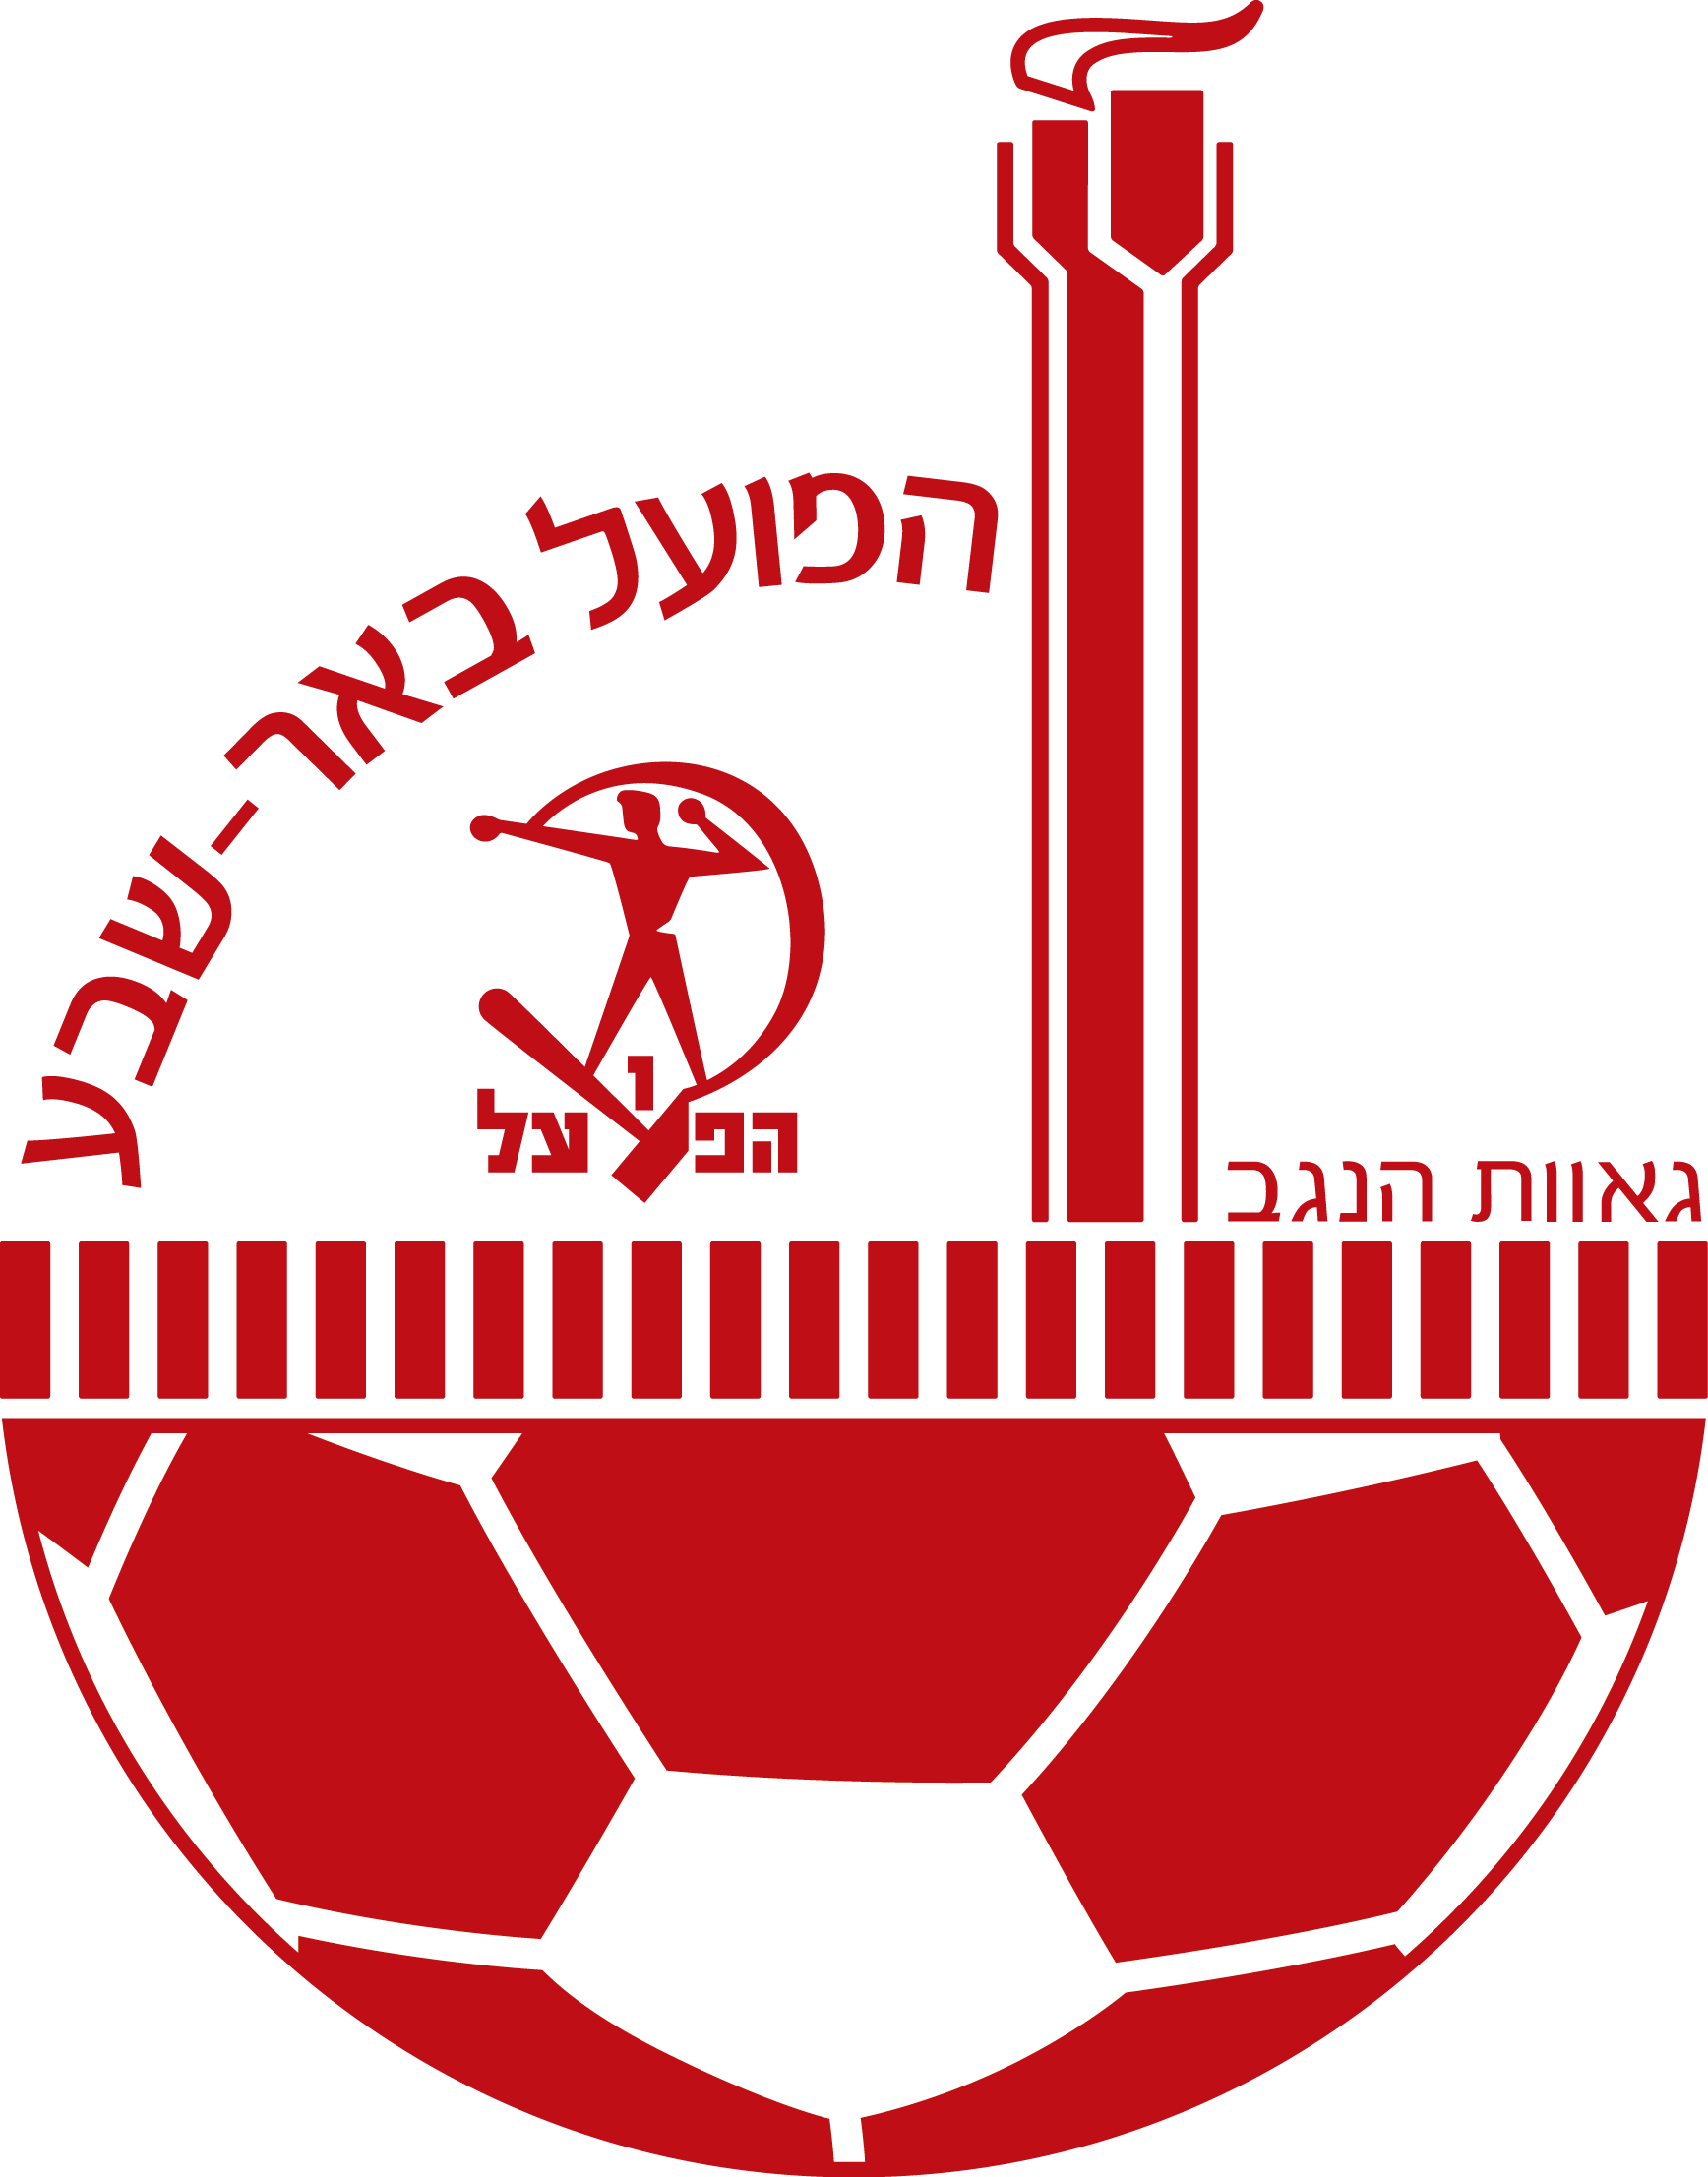 Hapoel sheva logo pinterest. Clipart football beer